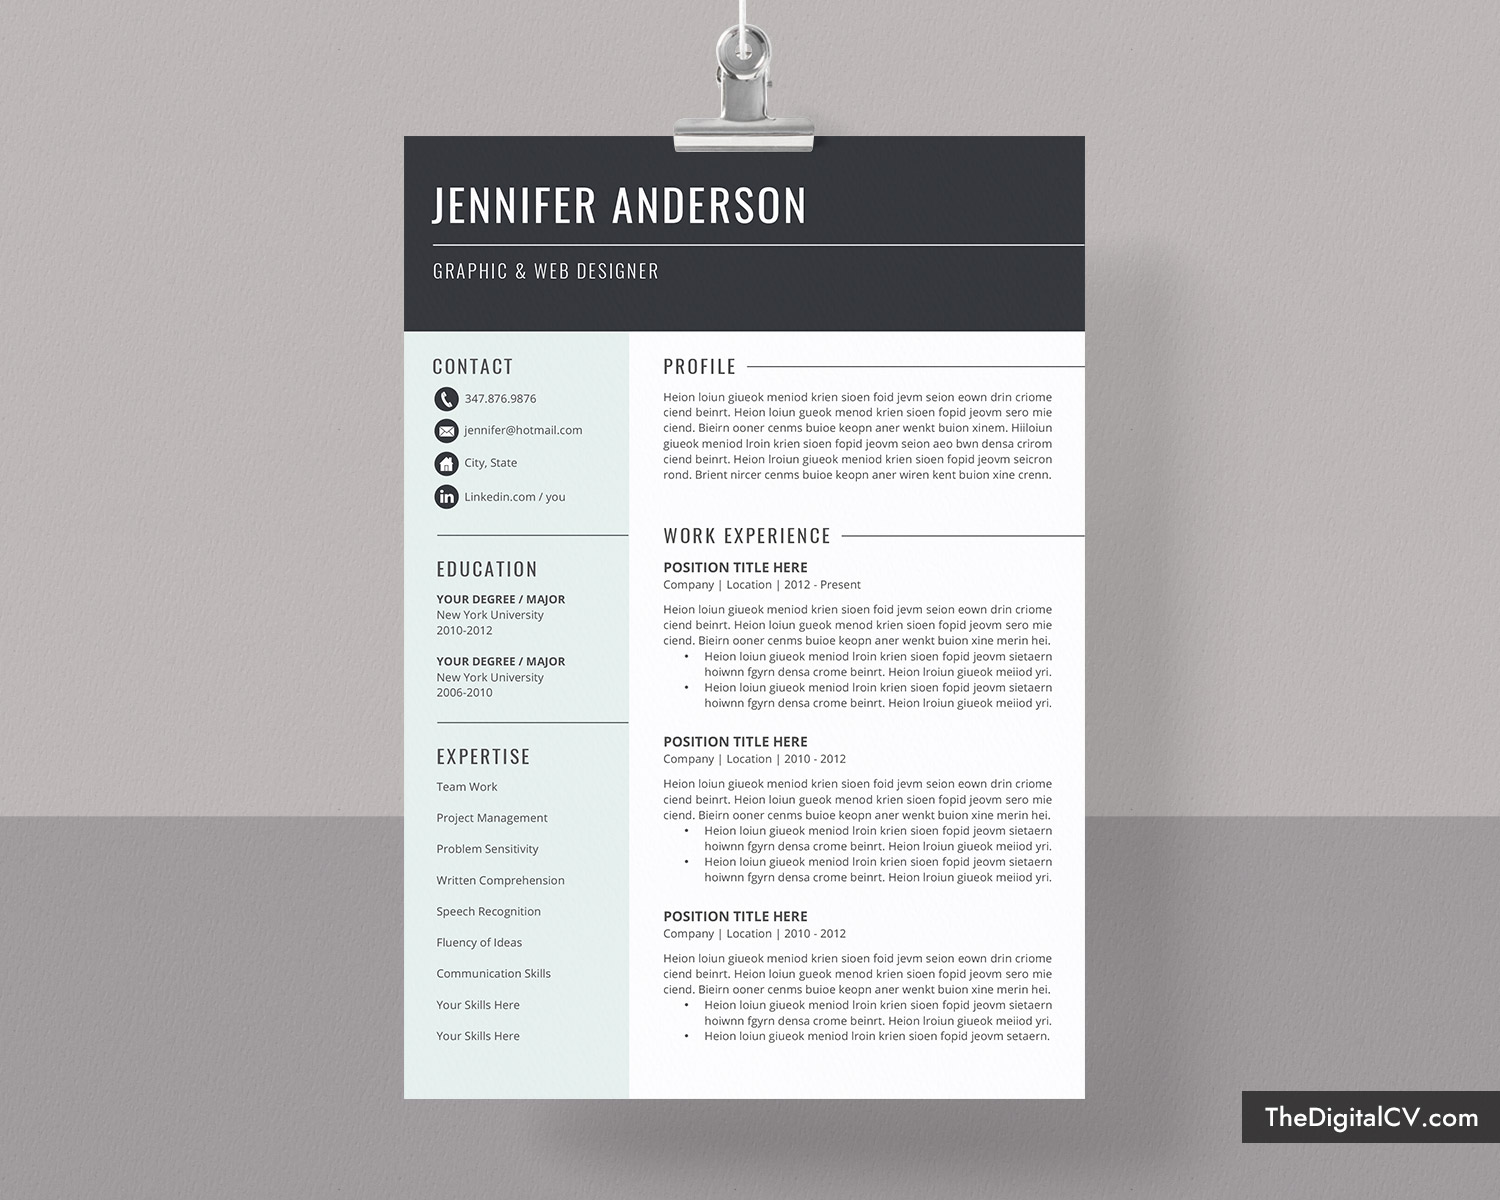 Basic and Simple Resume Template 2020-2021, CV Template, Cover Letter,  Microsoft Word Resume Template, 1-3 Page, Modern Resume, Creative Resume,  ...